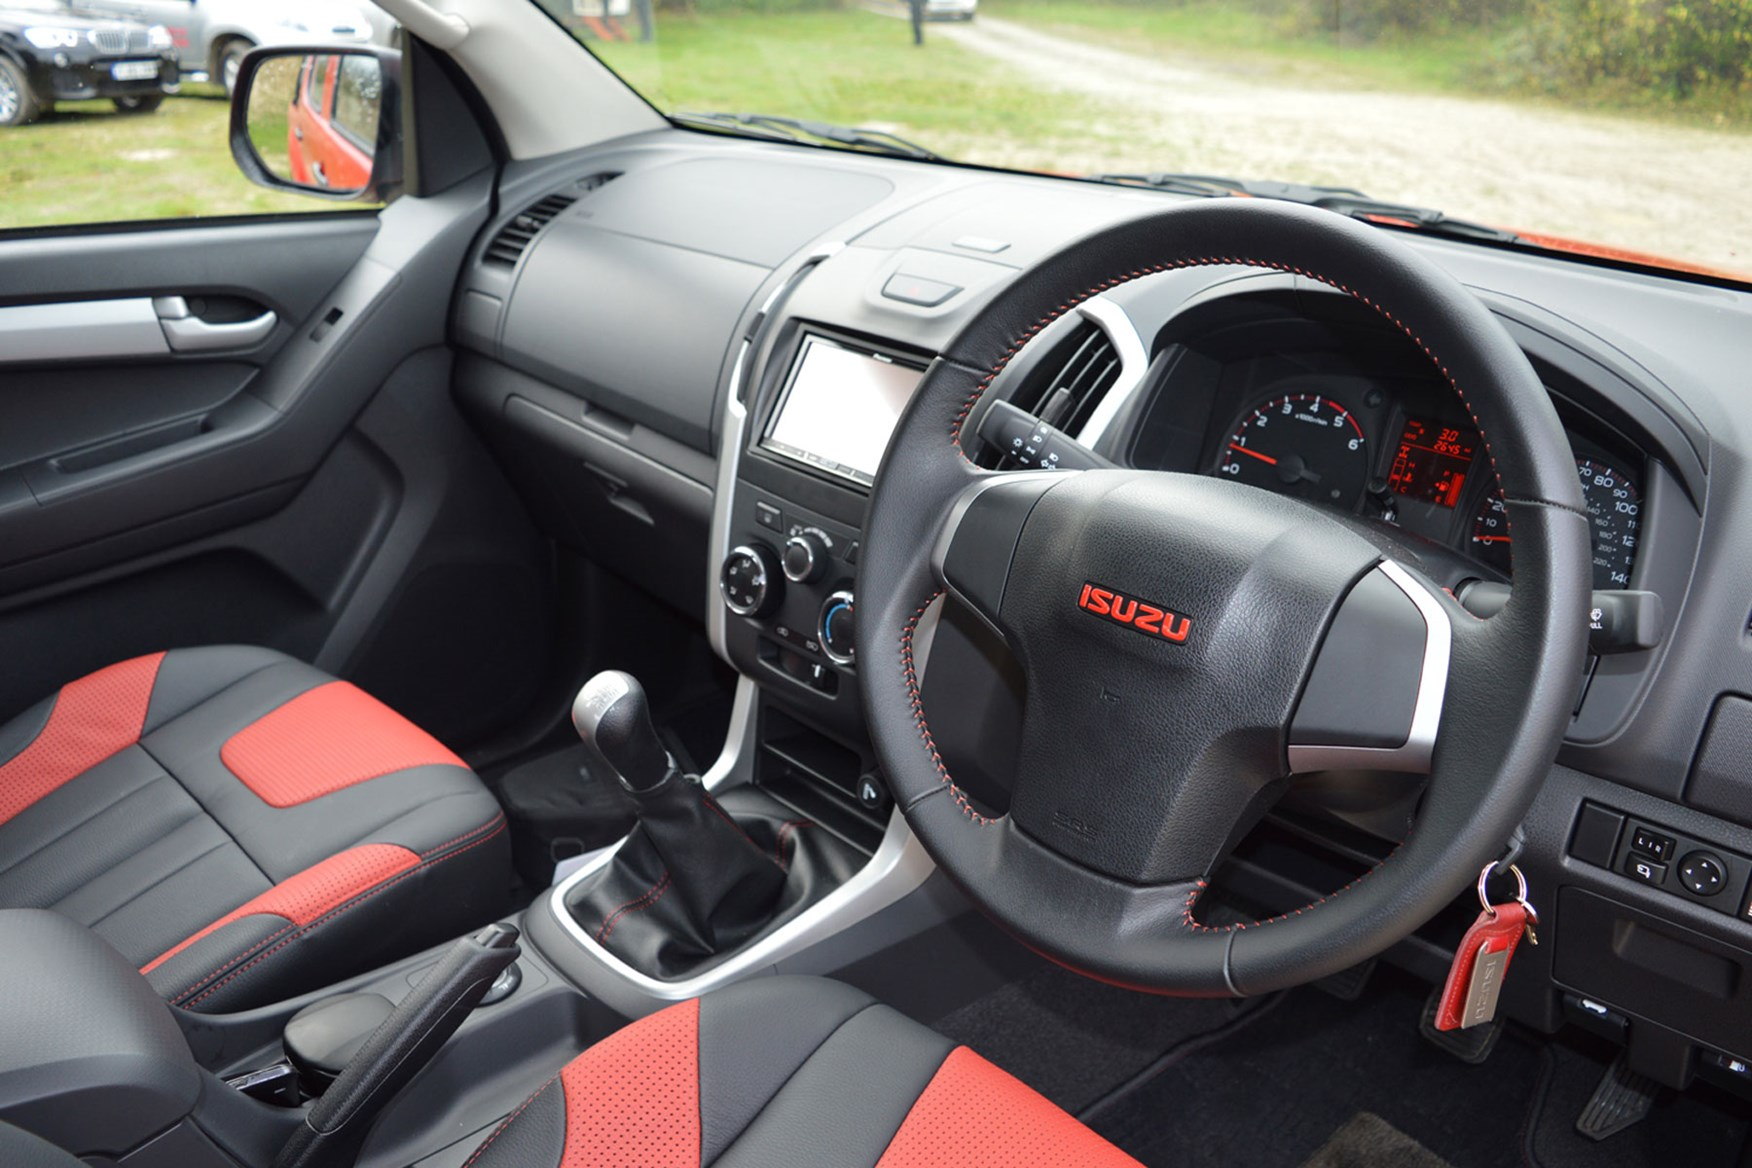 Isuzu D-Max Fury 2.5 review - cab interior with optional leather seats